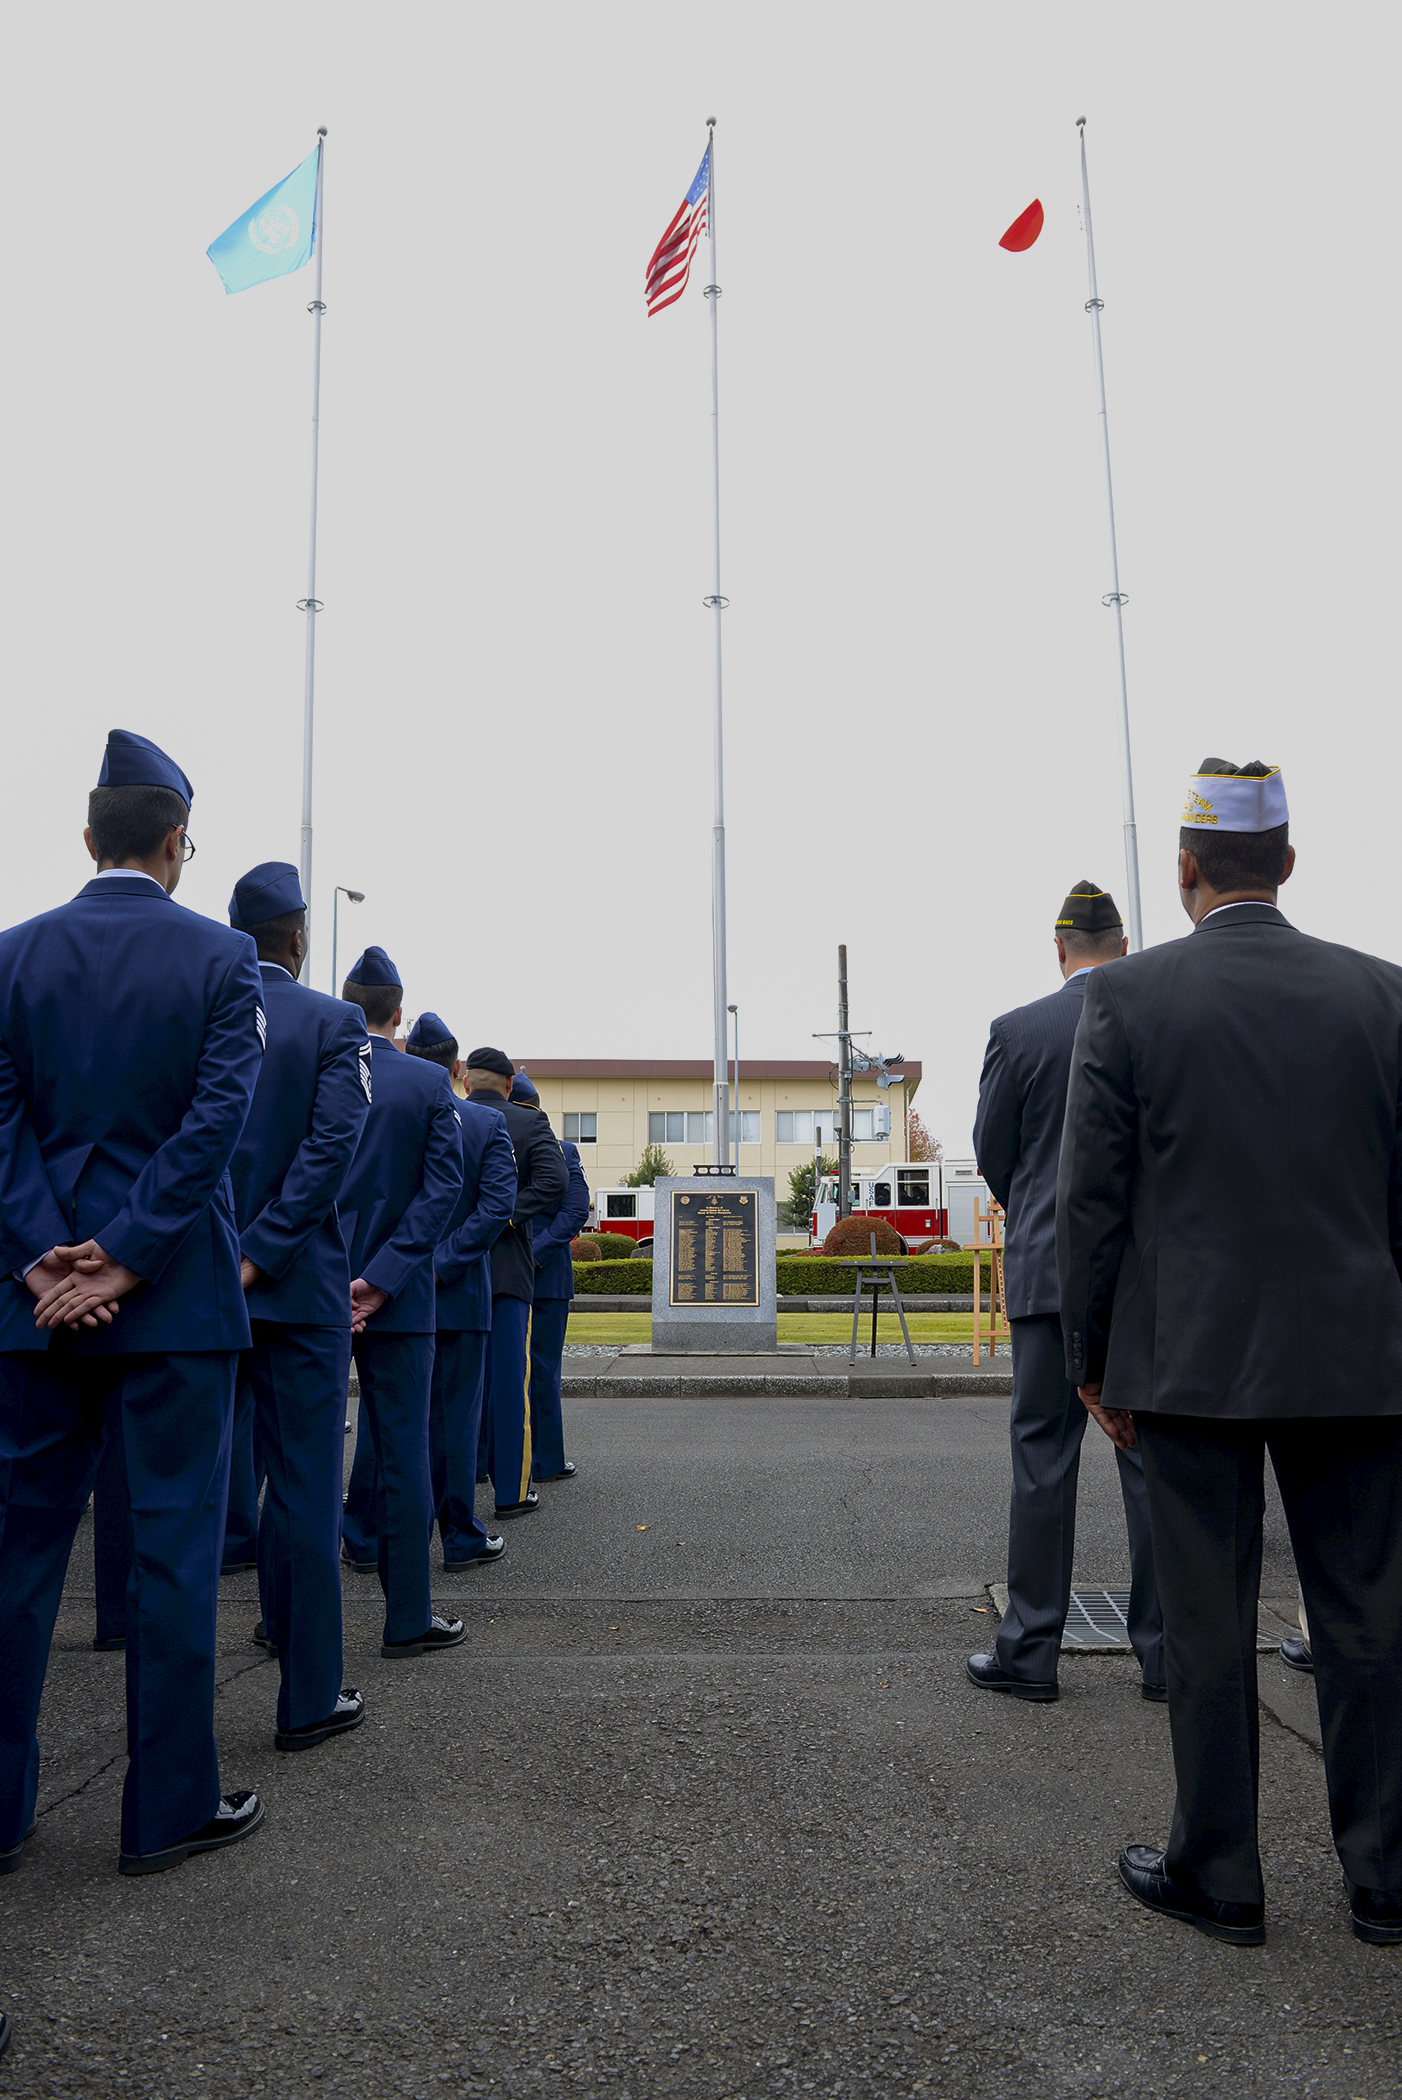 Service members stand in formation during a Veterans Day ceremony at Yokota Air Base, Japan, Nov. 11, 2015. Veterans Day celebrates the service of all U.S. military veterans and coincides with Armistice Day and Remembrance Day which are celebrated in other countries, marking the anniversary of the end of World War I. (U.S. Air Force photo by Senior Airman David C. Danford/Released)